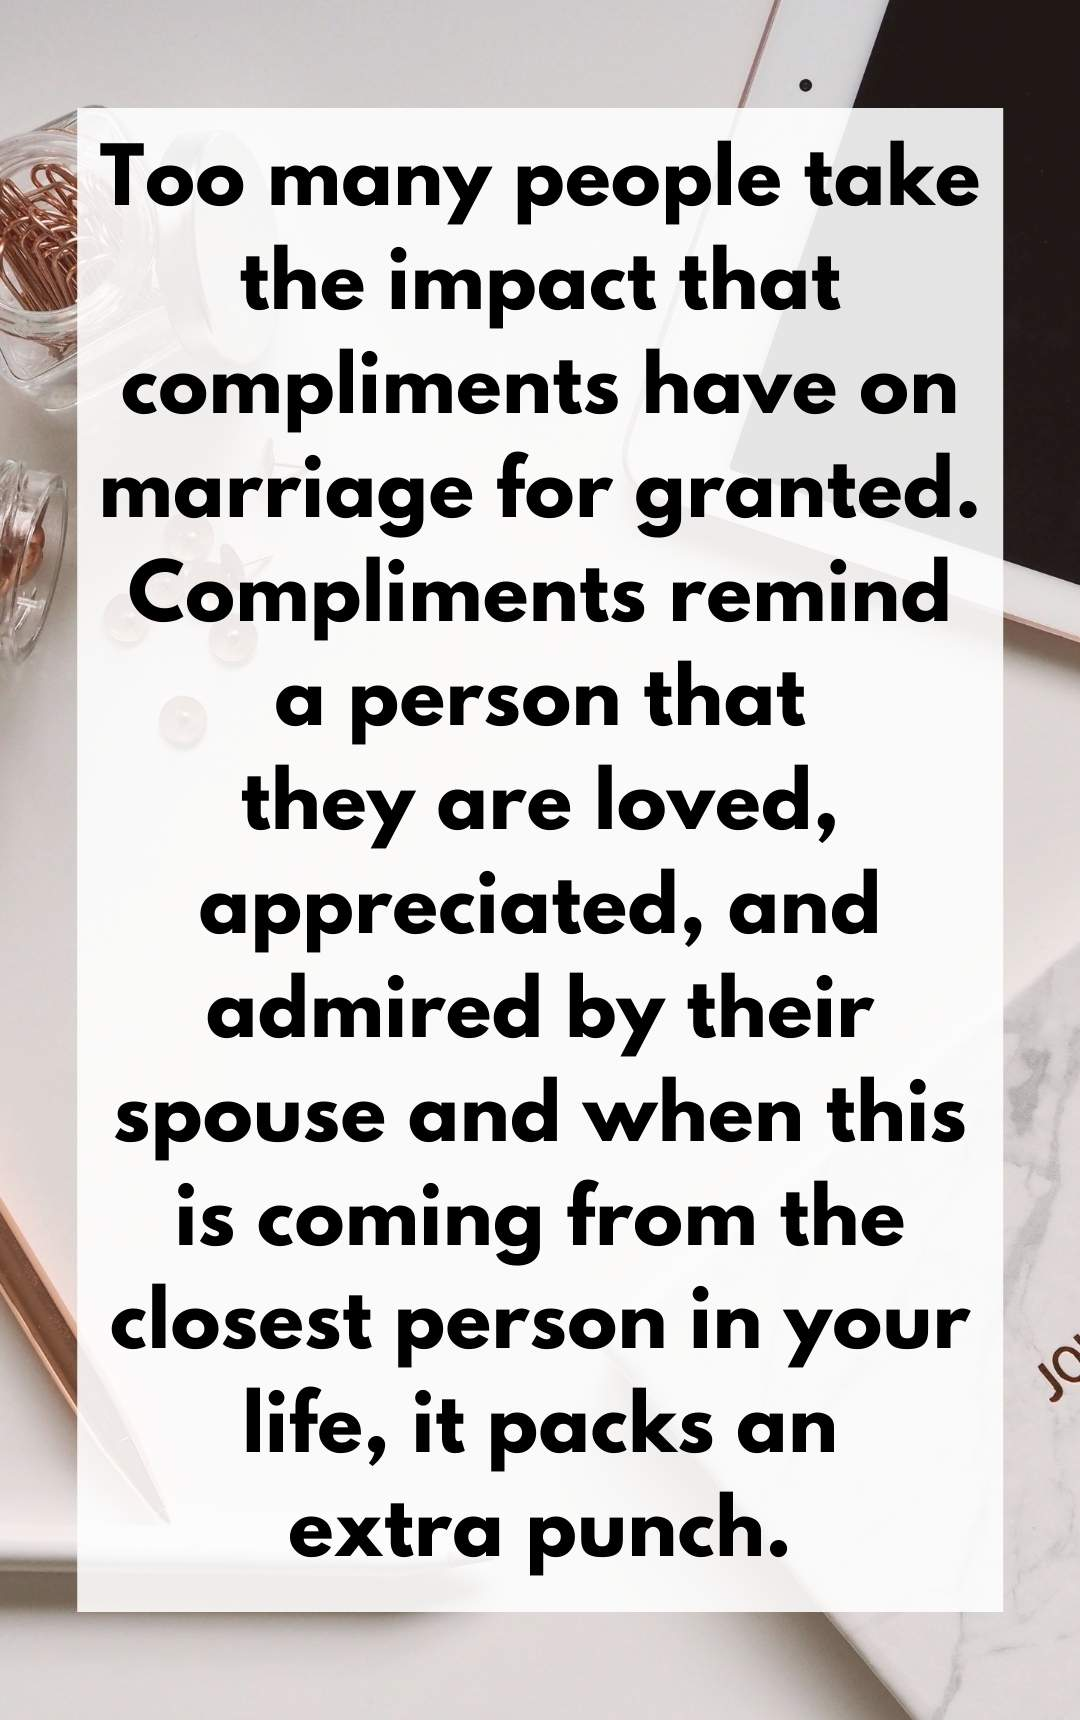 Too many people take the impact that compliments have on marriage for granted. Compliments remind a person that they are loved, appreciated, and admired by their spouse and when this is coming from the closest person in your life, it packs an extra punch.